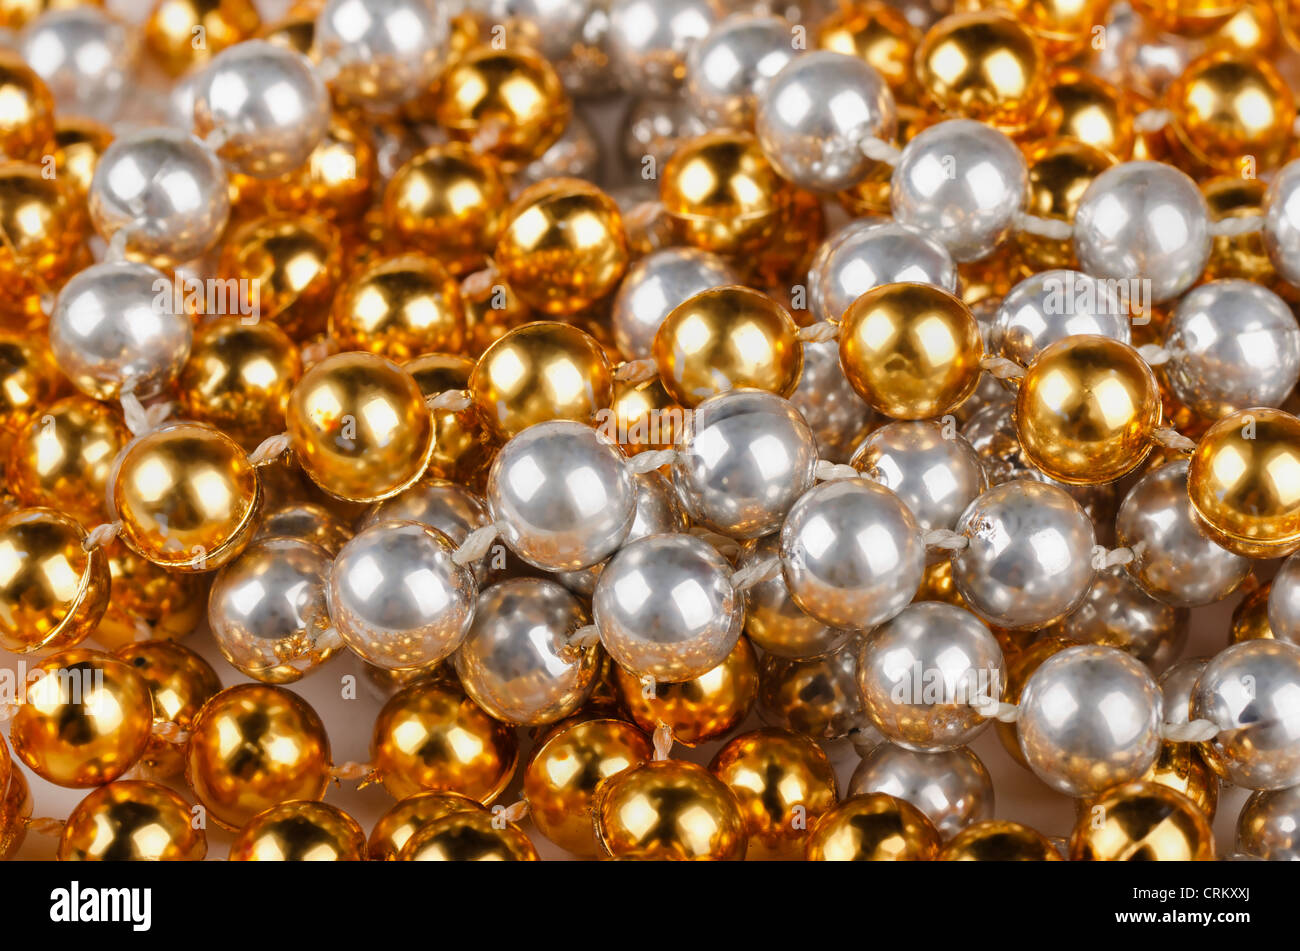 Background of gold and silver christmas beads - Stock Image